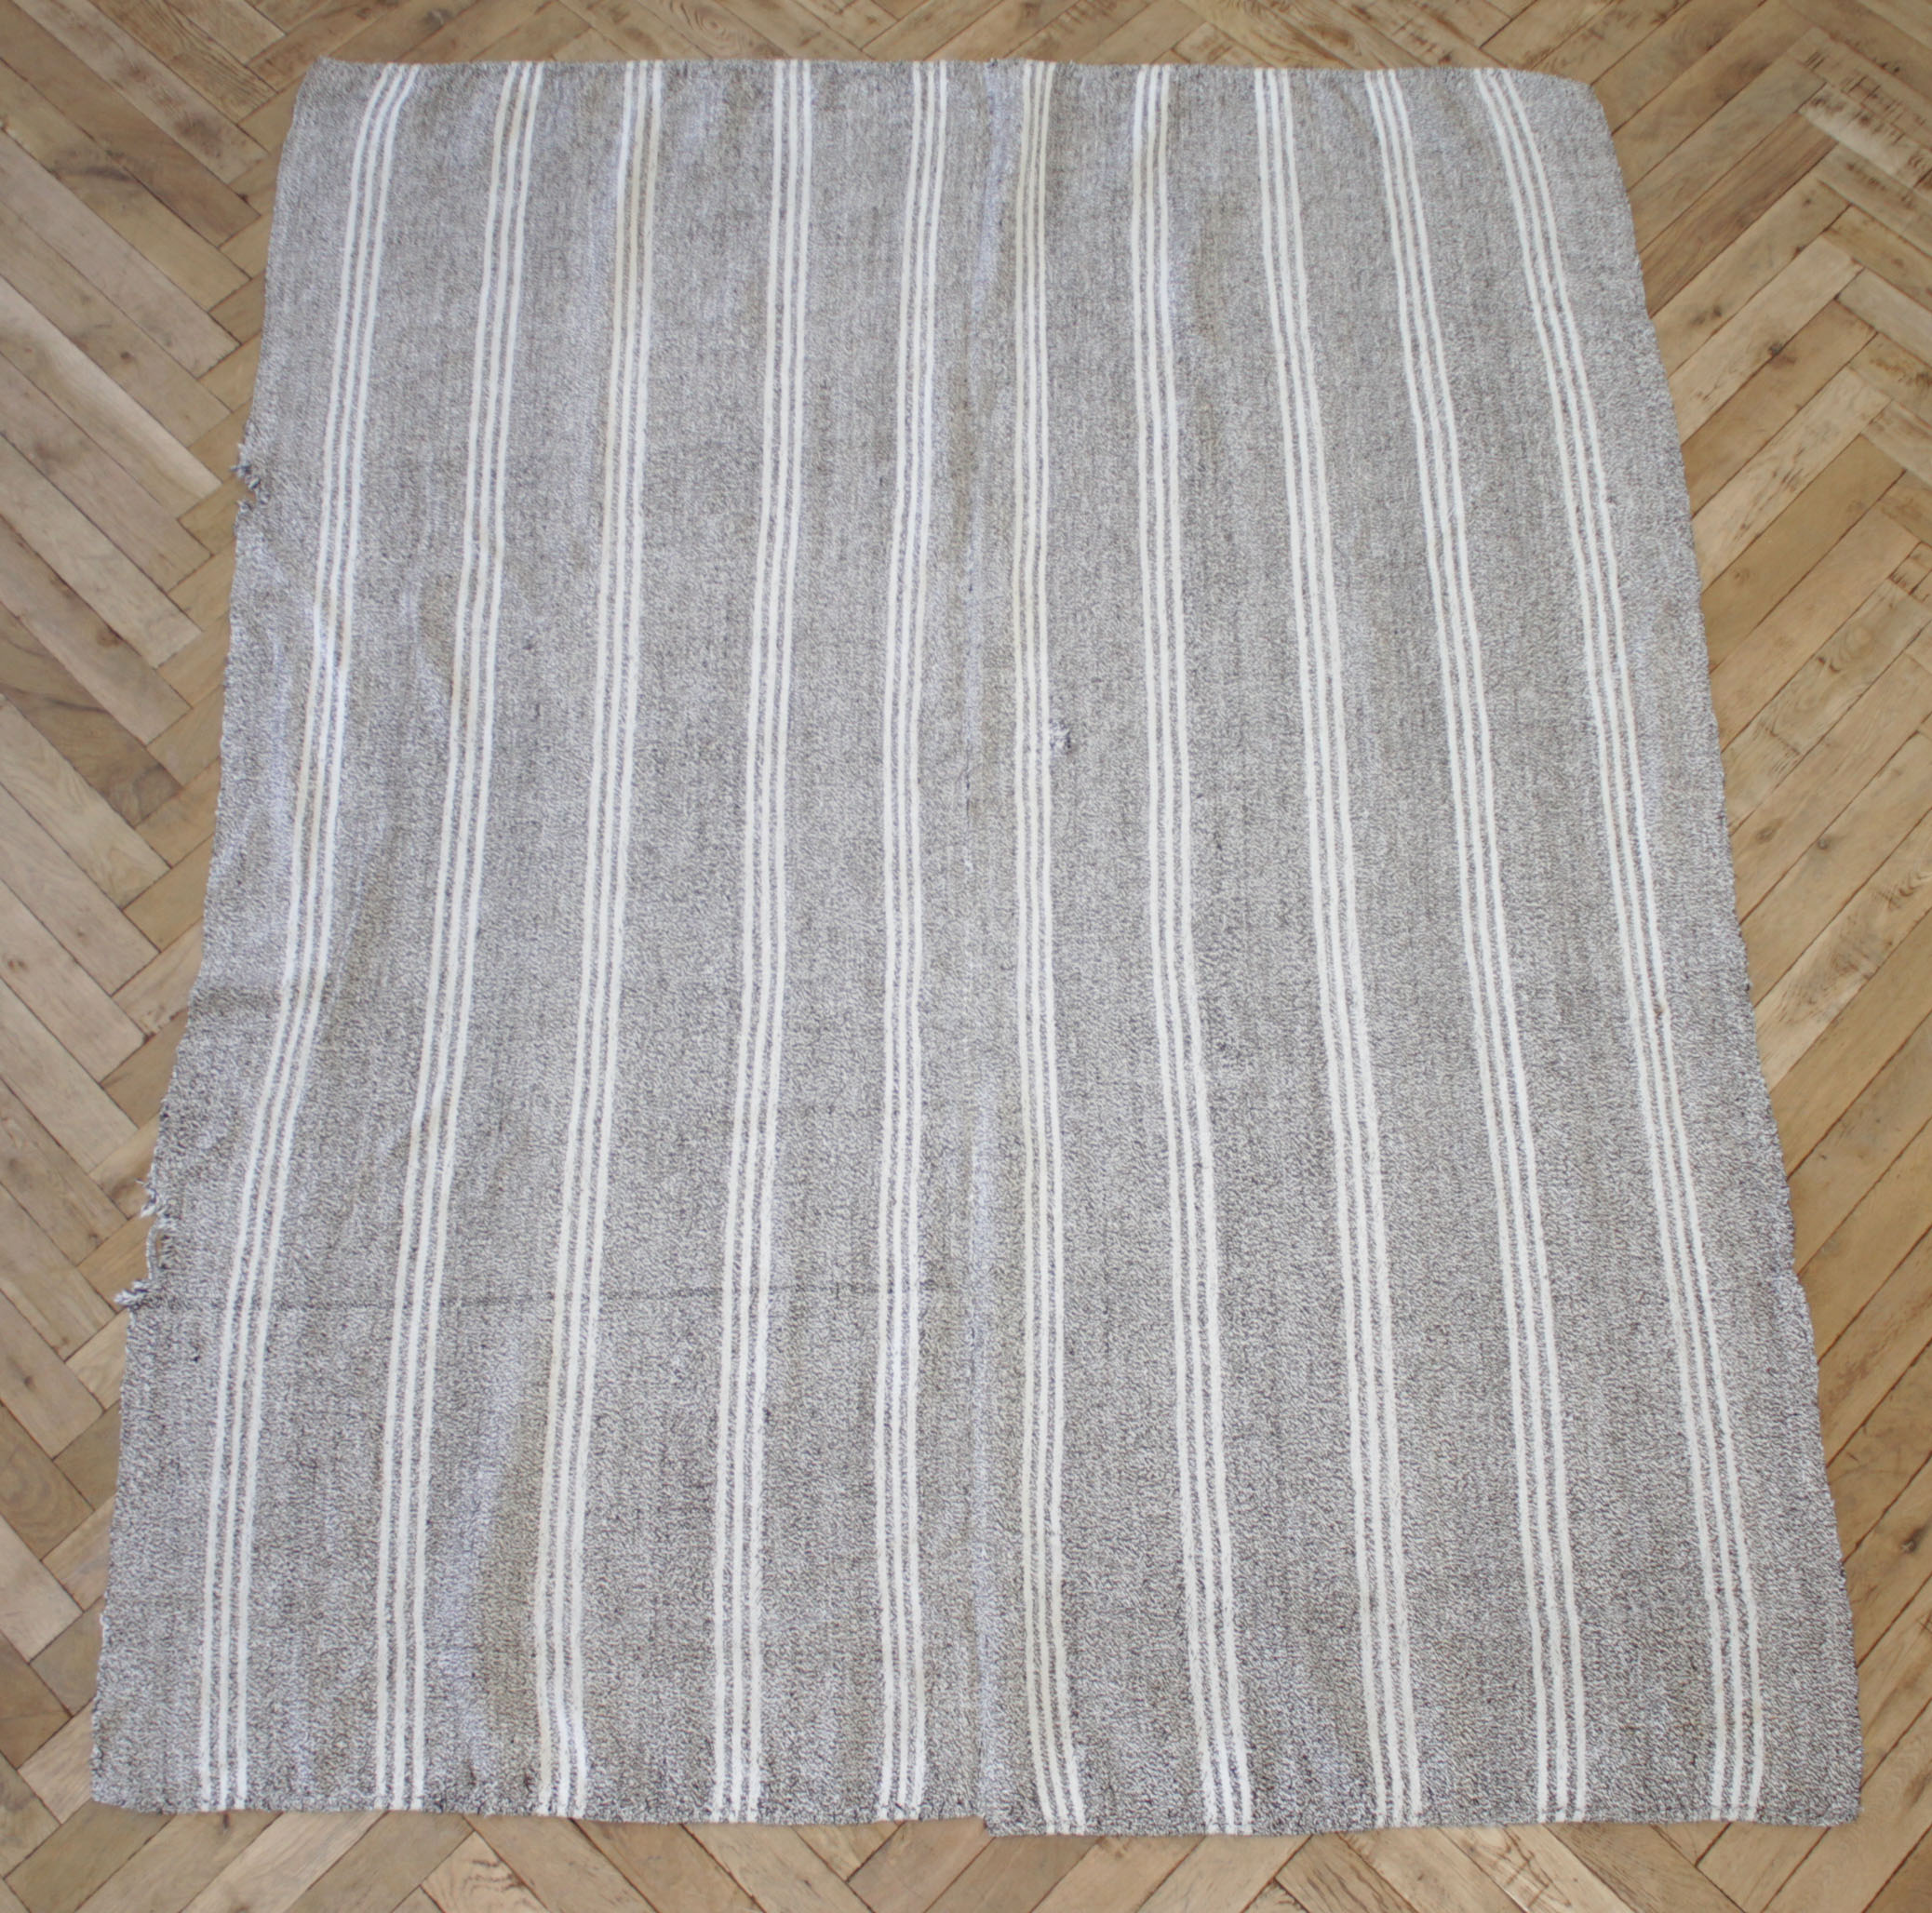 Vintage Turkish Flat-Weave Rug Gray Brown and White Stripes